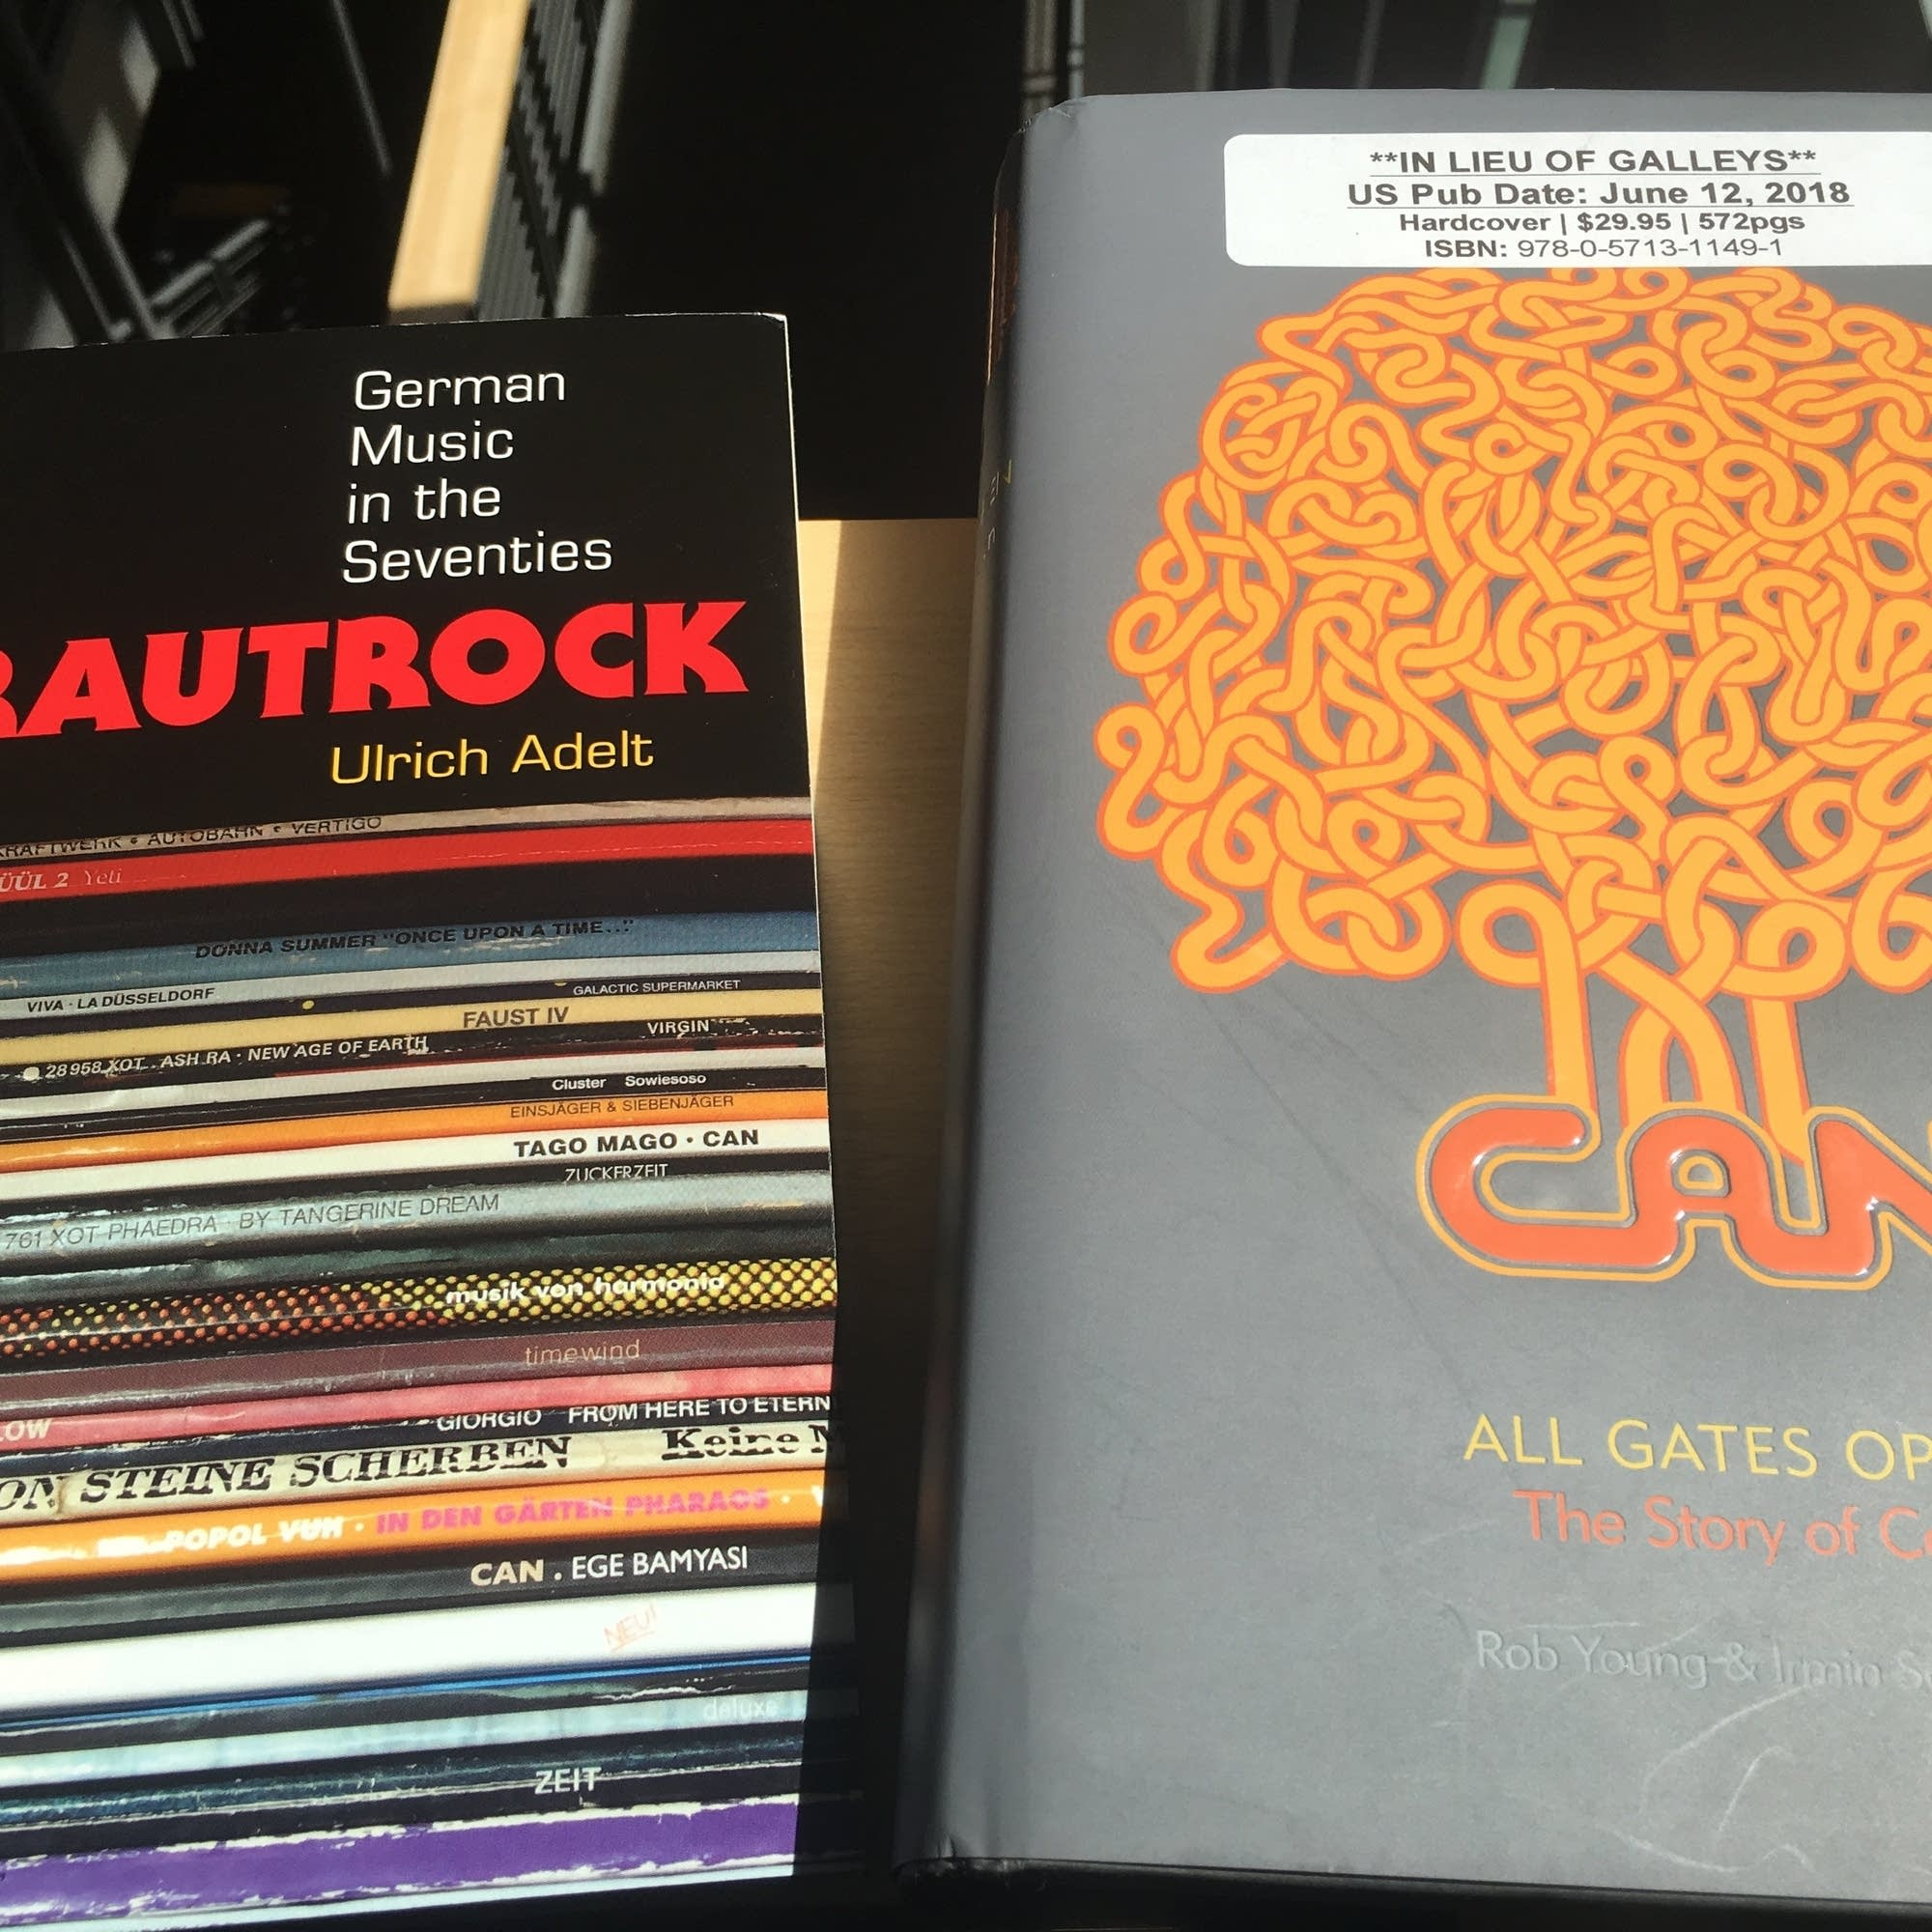 Two recent books on krautrock.